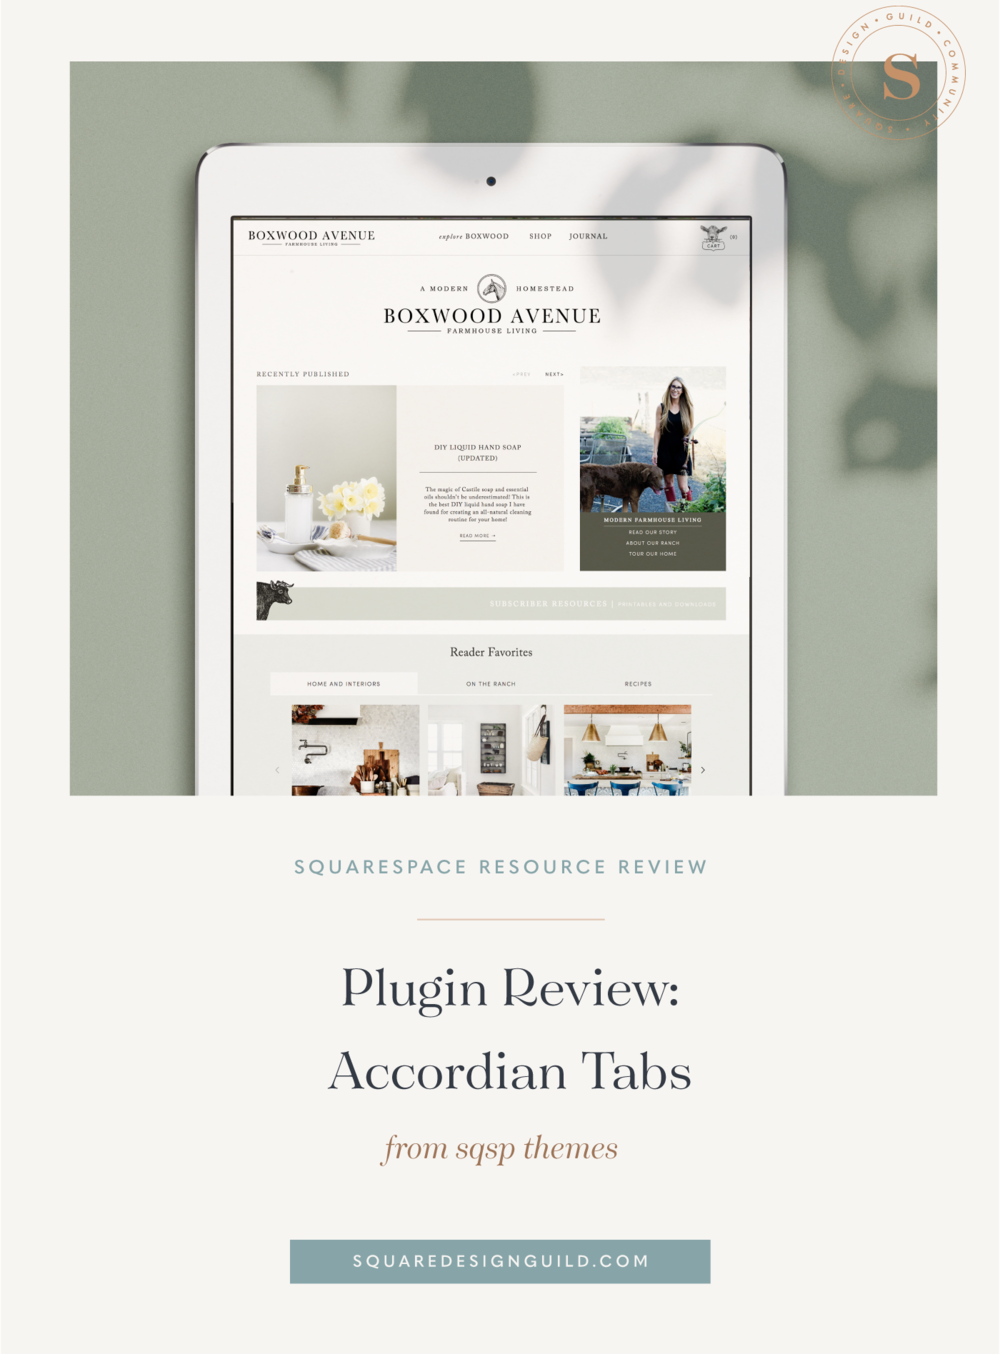 Squarespace Plugin Review Series - Sqsp Themes Accordian Tabs.png